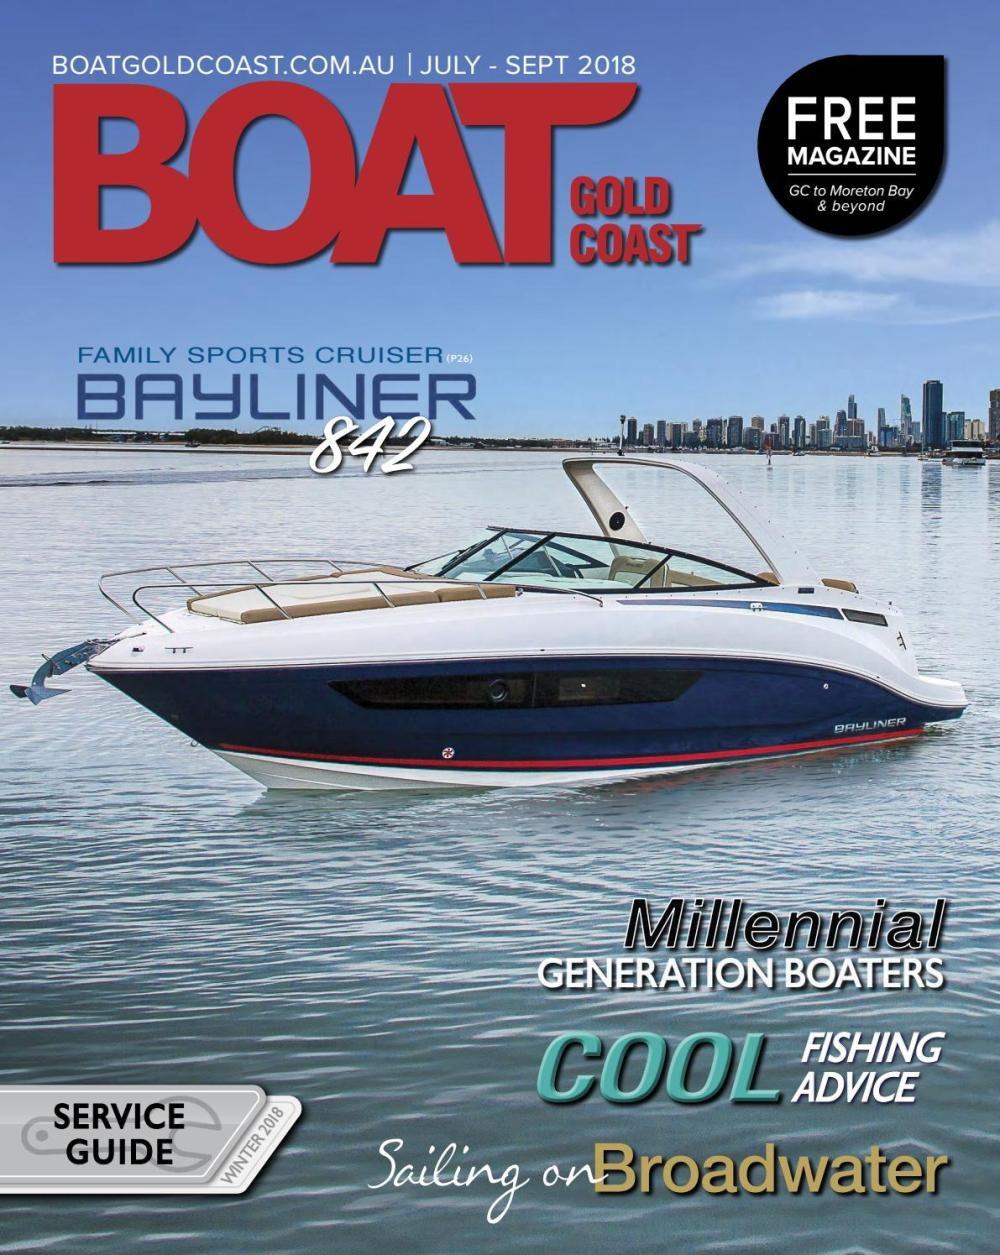 medium resolution of boat gold coast magazine july sept 2018